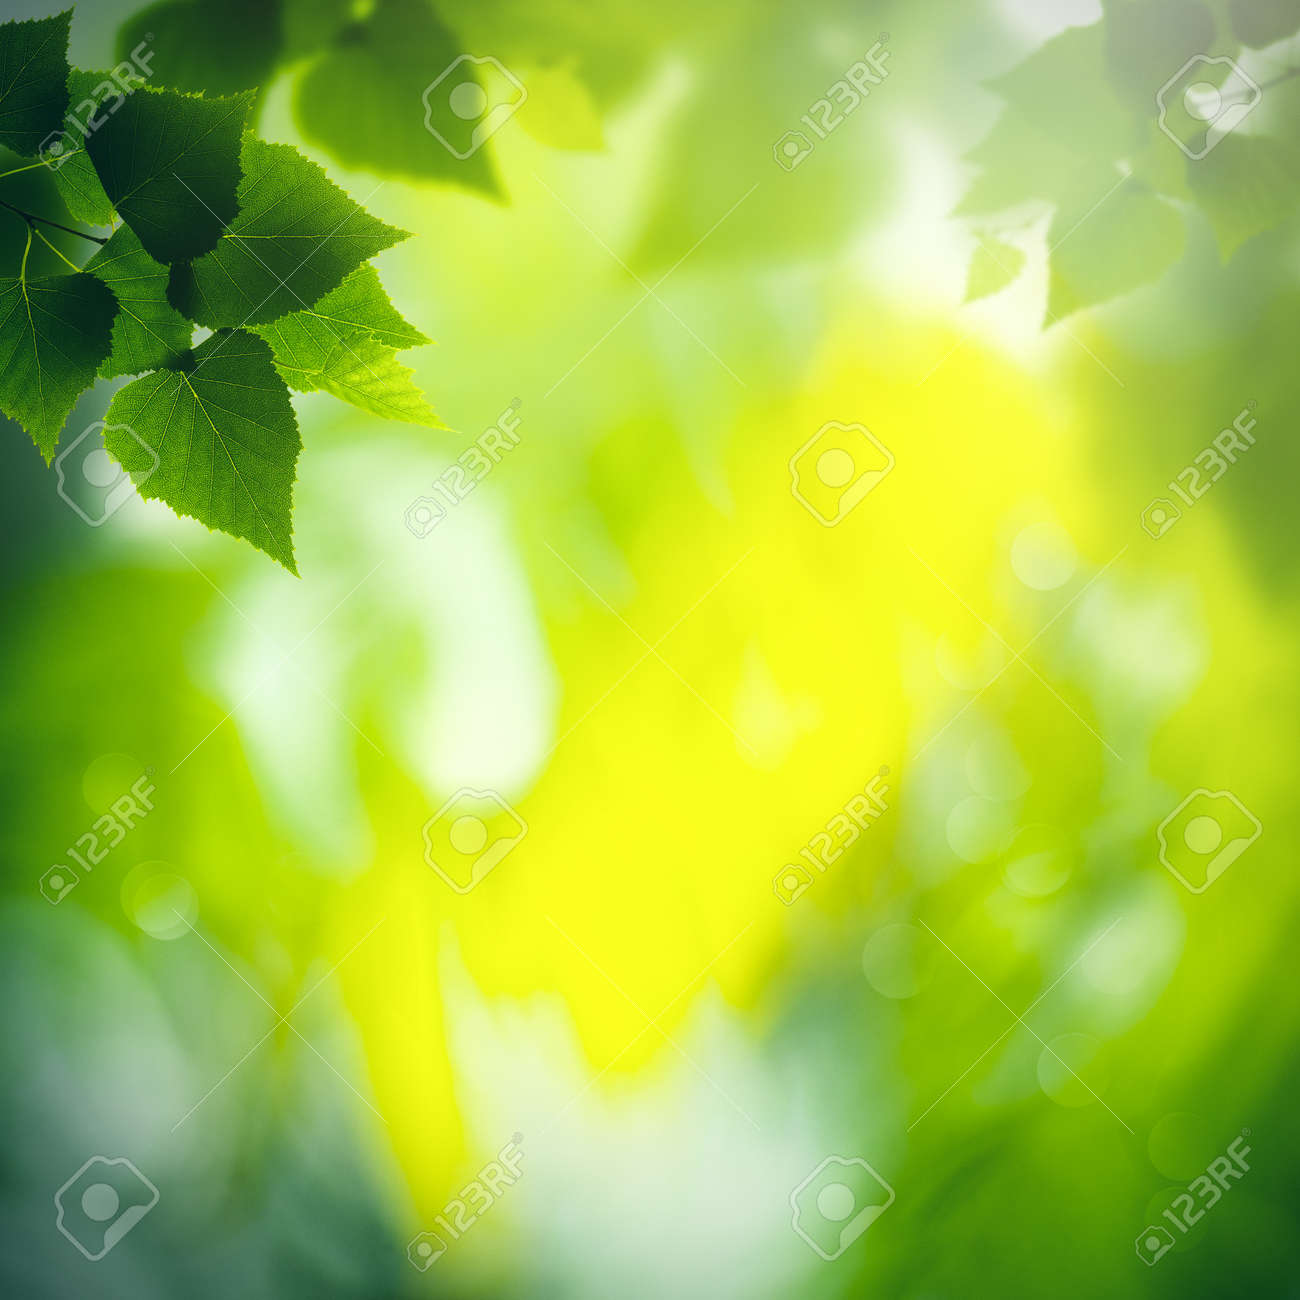 Green birch foliage with defocused background, Abstract seasonal wallpapers - 159256902